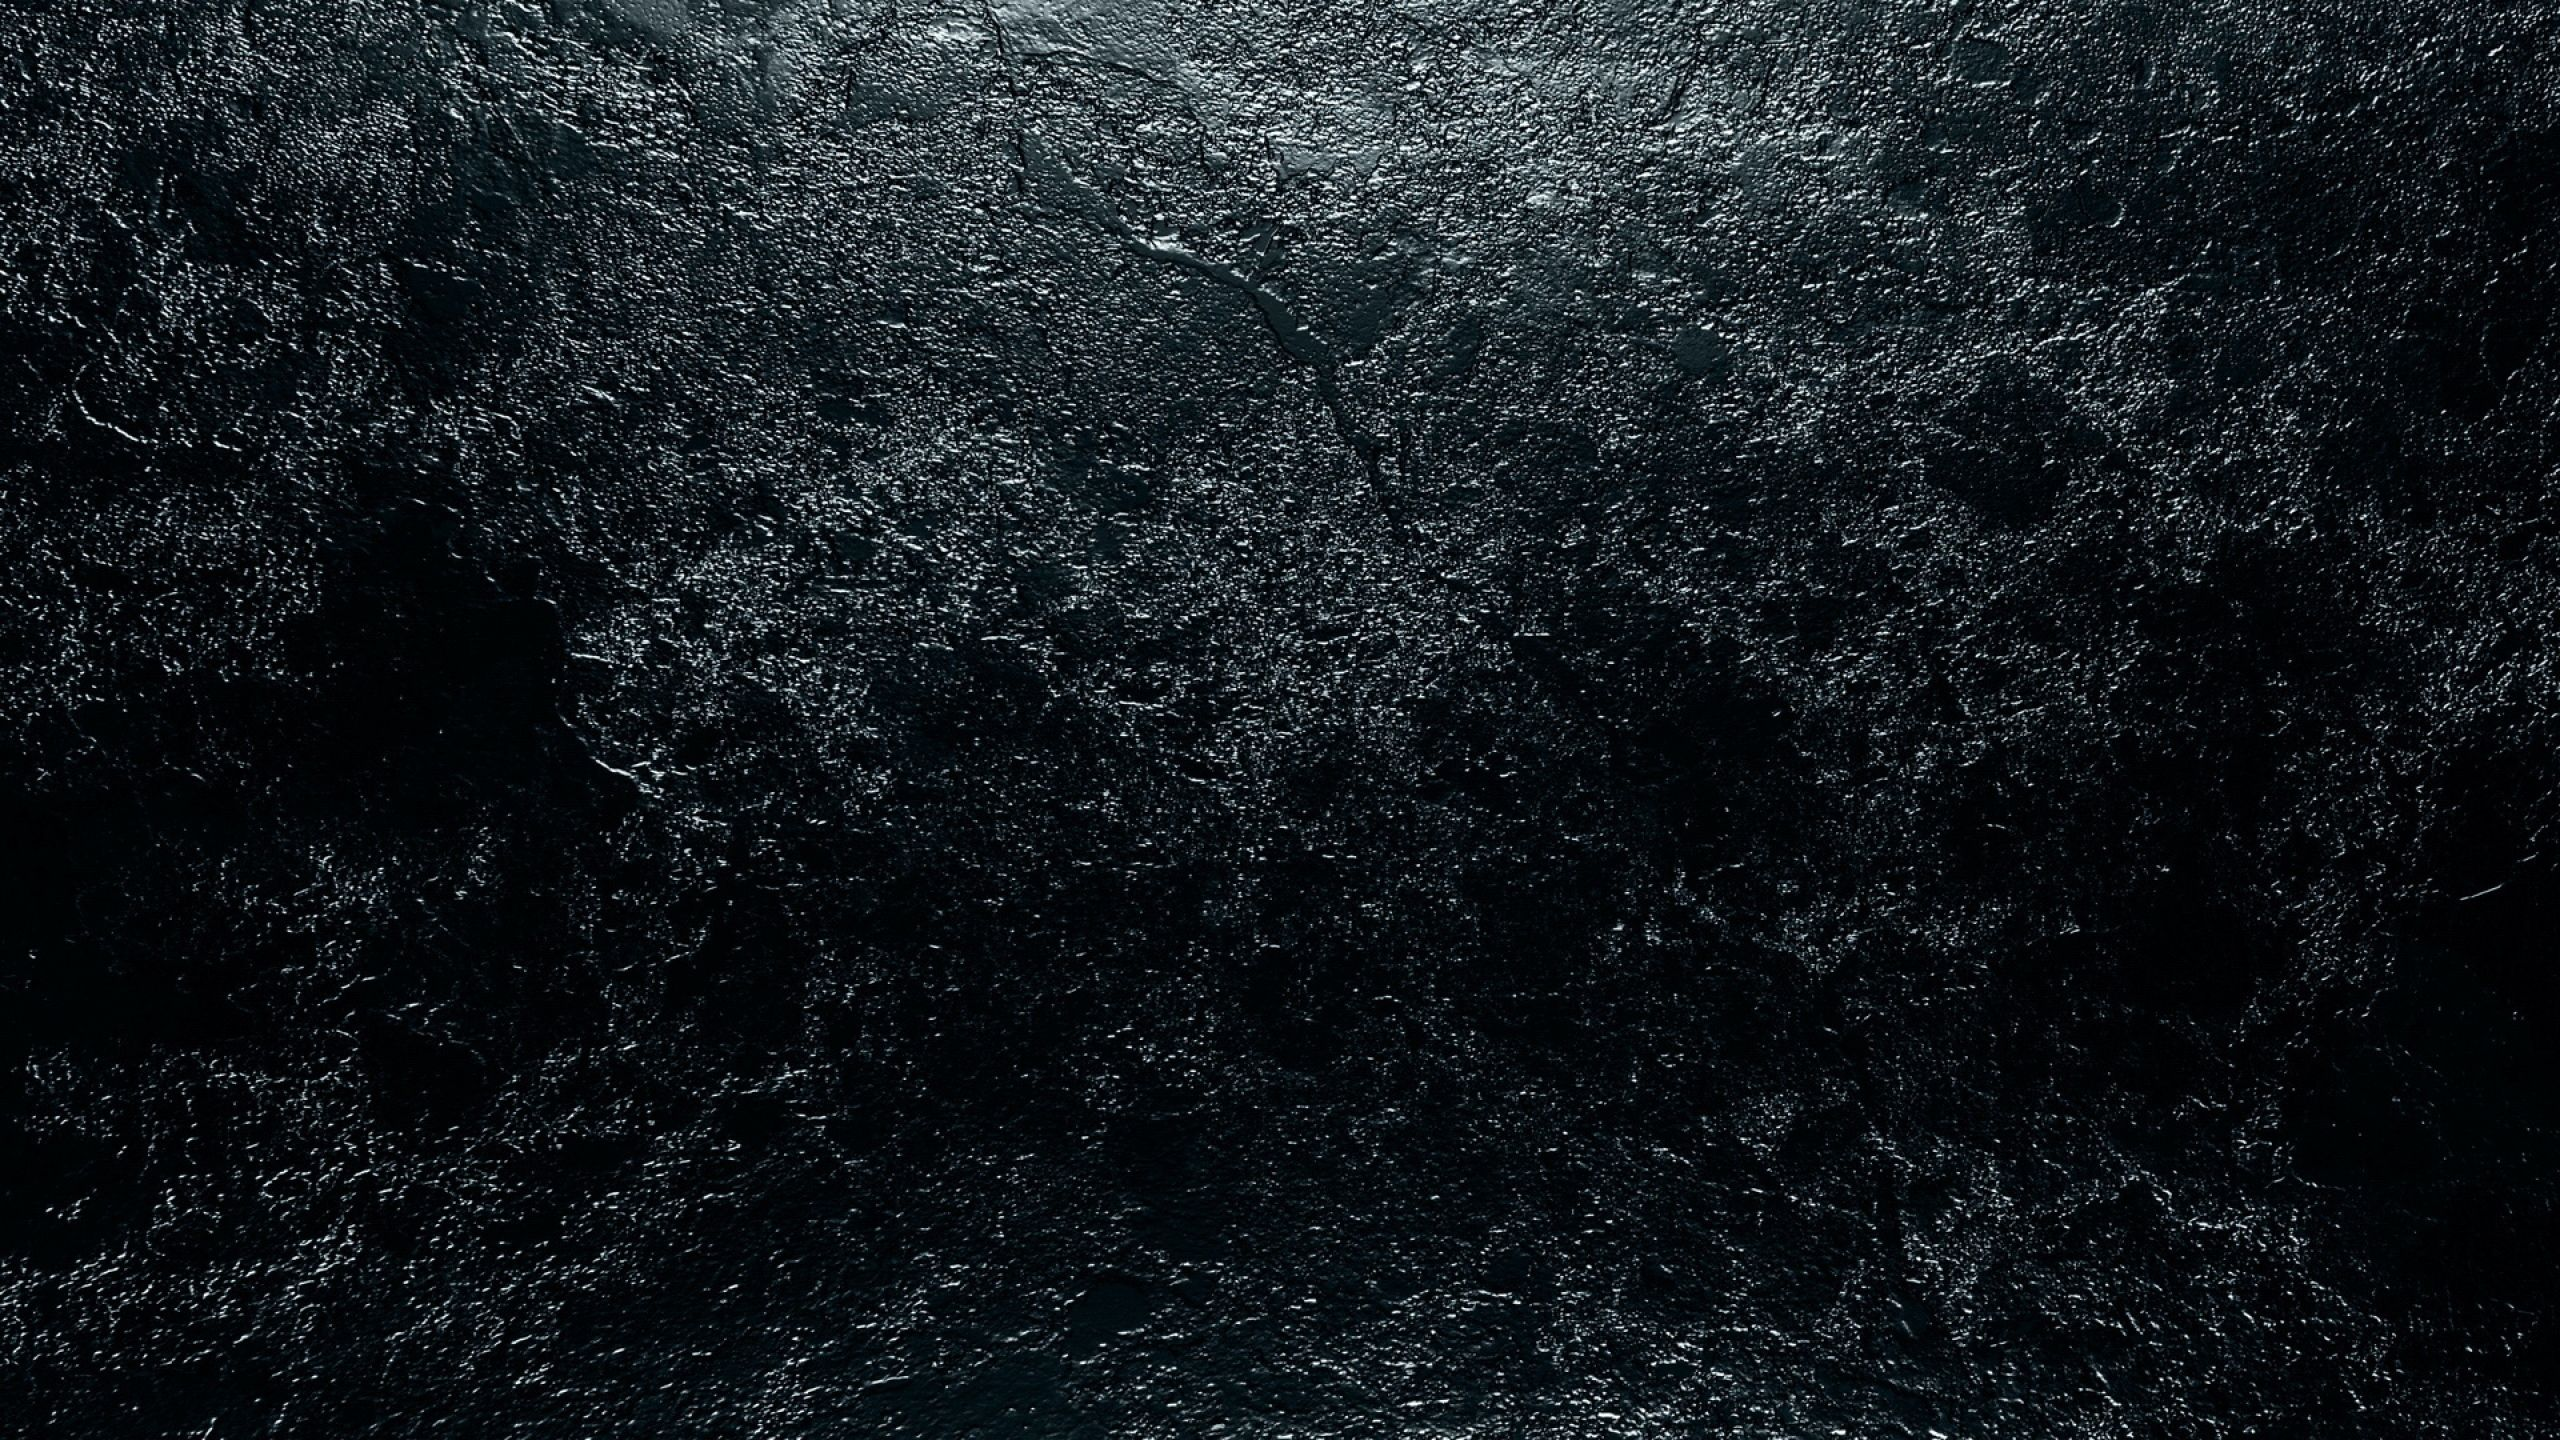 2560x1440 Wallpaper Dark Background Texture Papel De Parede